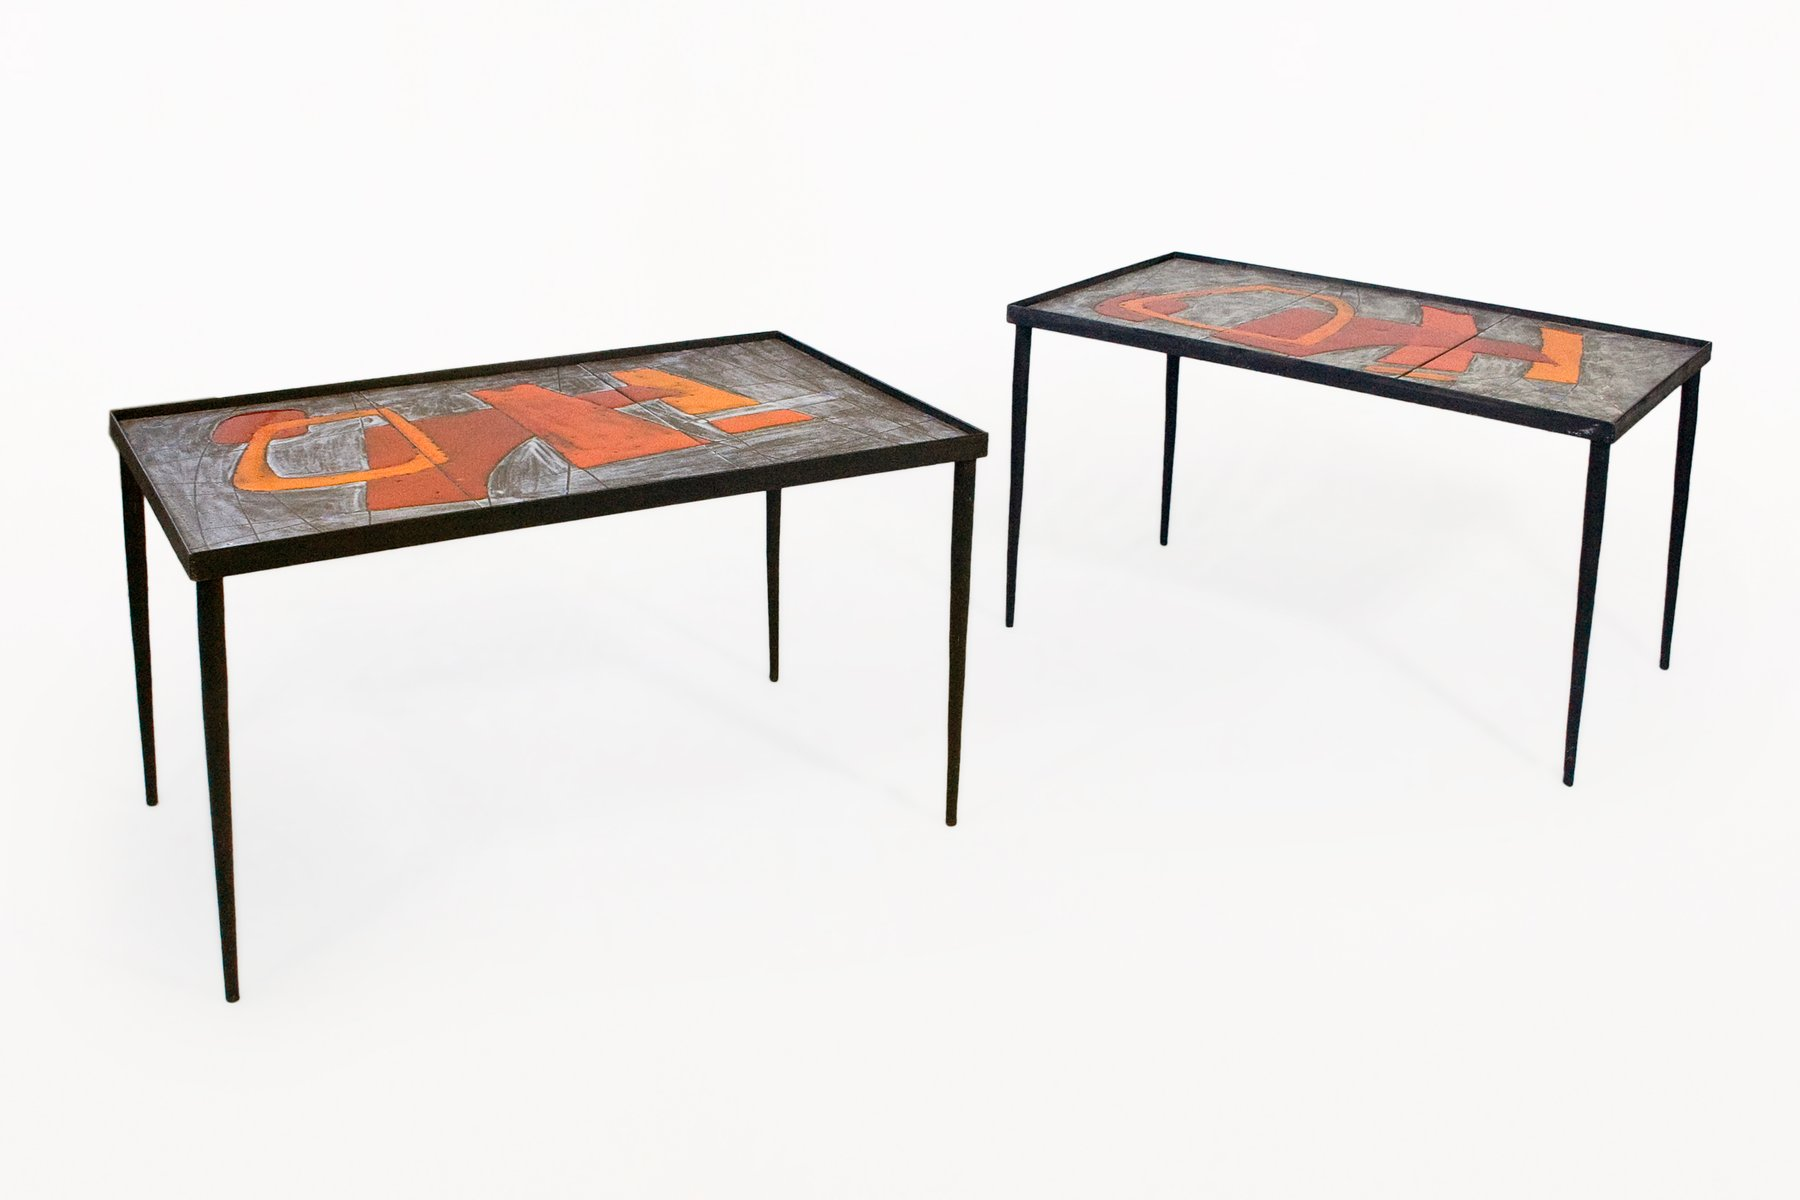 Ceramic Coffee Tables by Robert and Jean Cloutier 1960s Set of 2